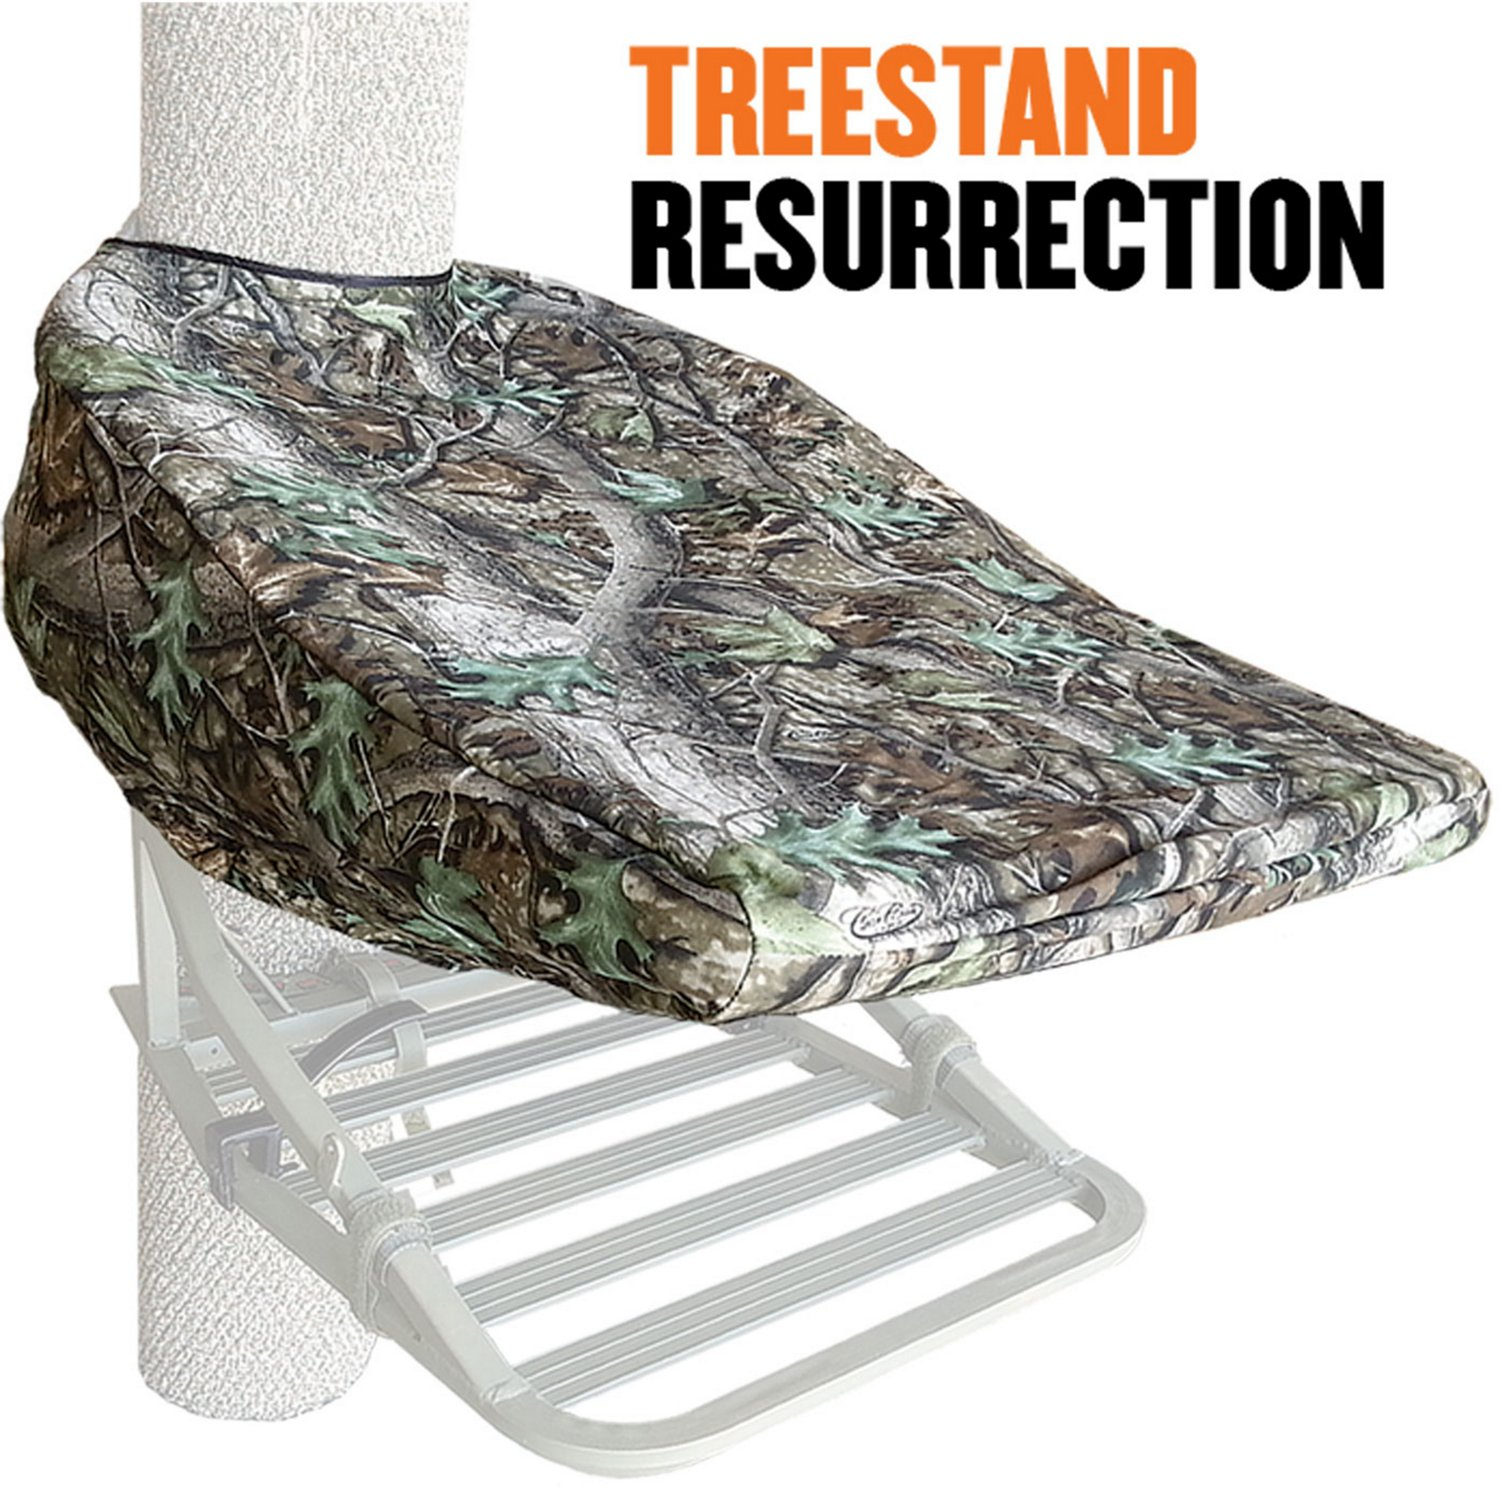 summit trophy chair review desk chairs argos tree stand accessories academy display product reviews for cottonwood outdoors weathershield treestand resurrection small cover